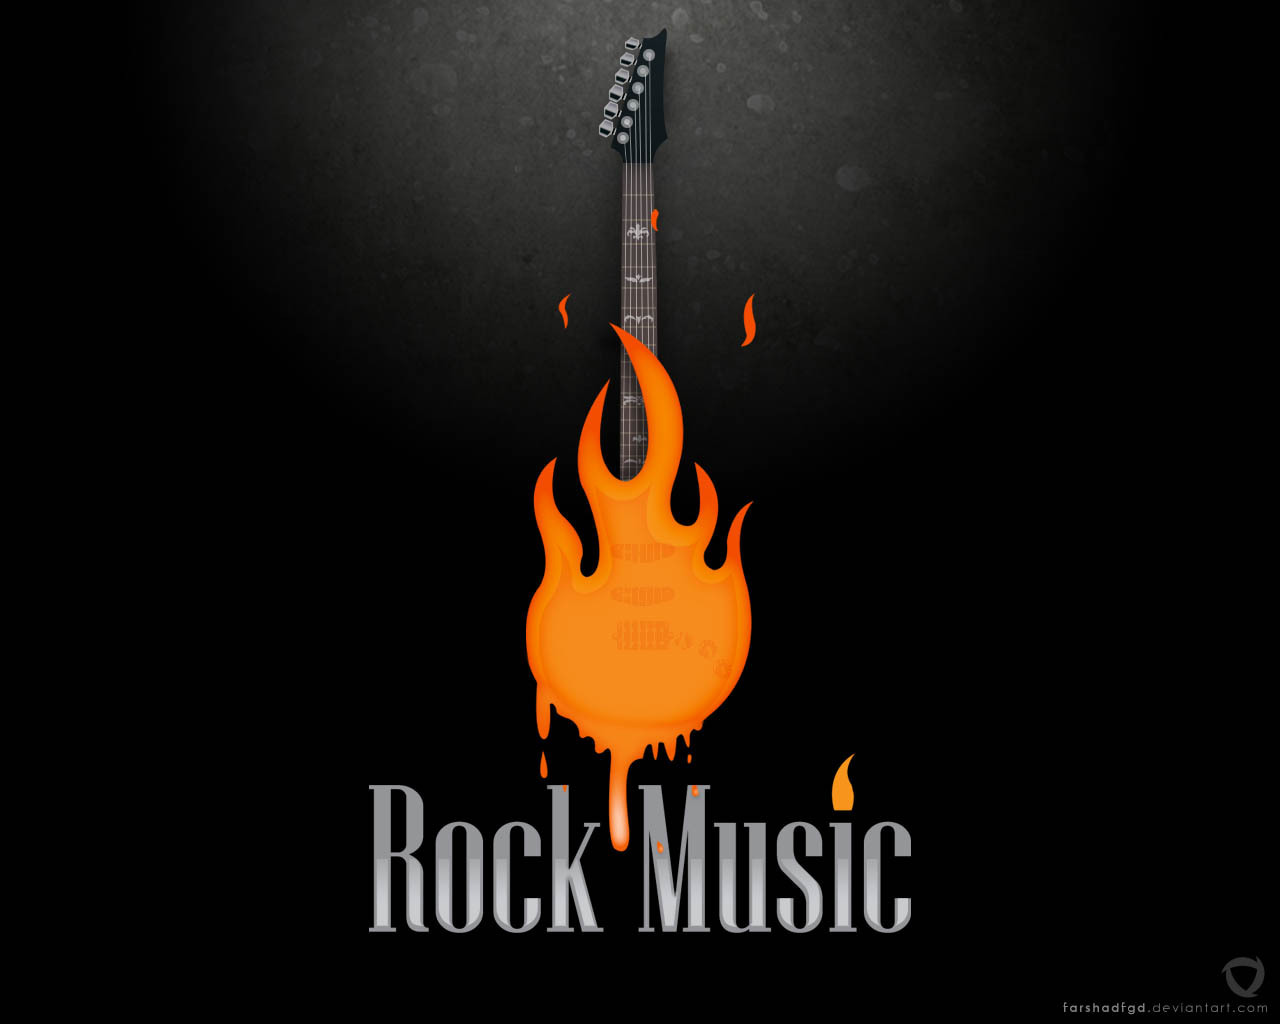 rock music images rock HD wallpaper and background photos 17211271 1280x1024